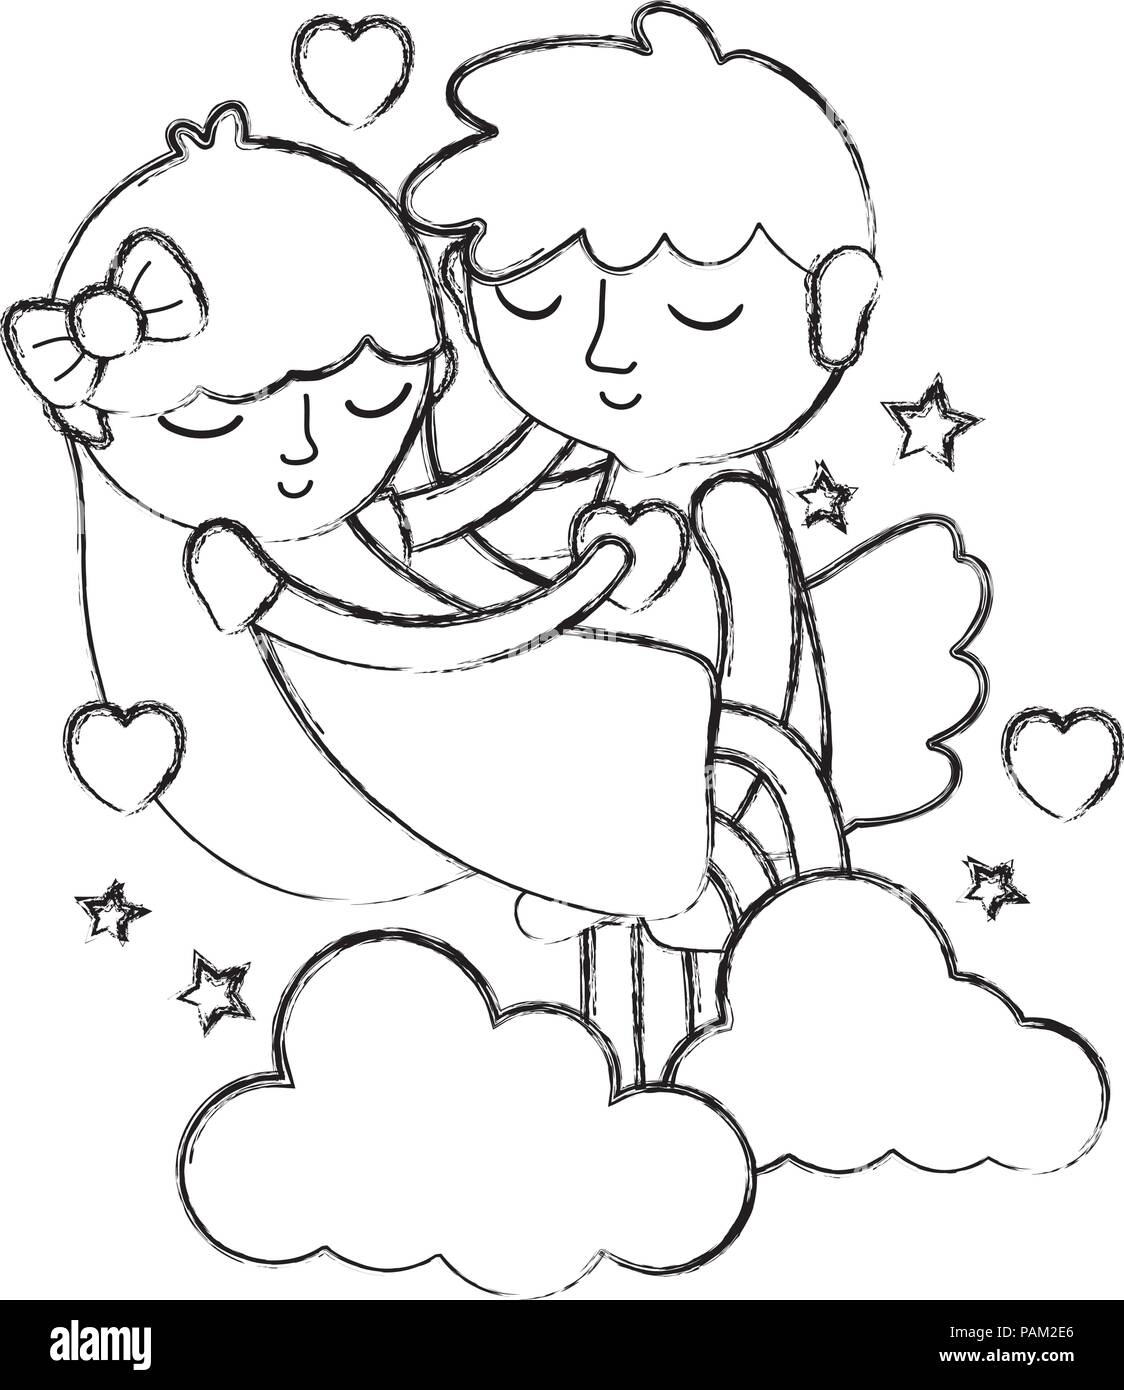 Grunge Boy And Girl Sleeping With Hearts And Clouds Stock Vector Art